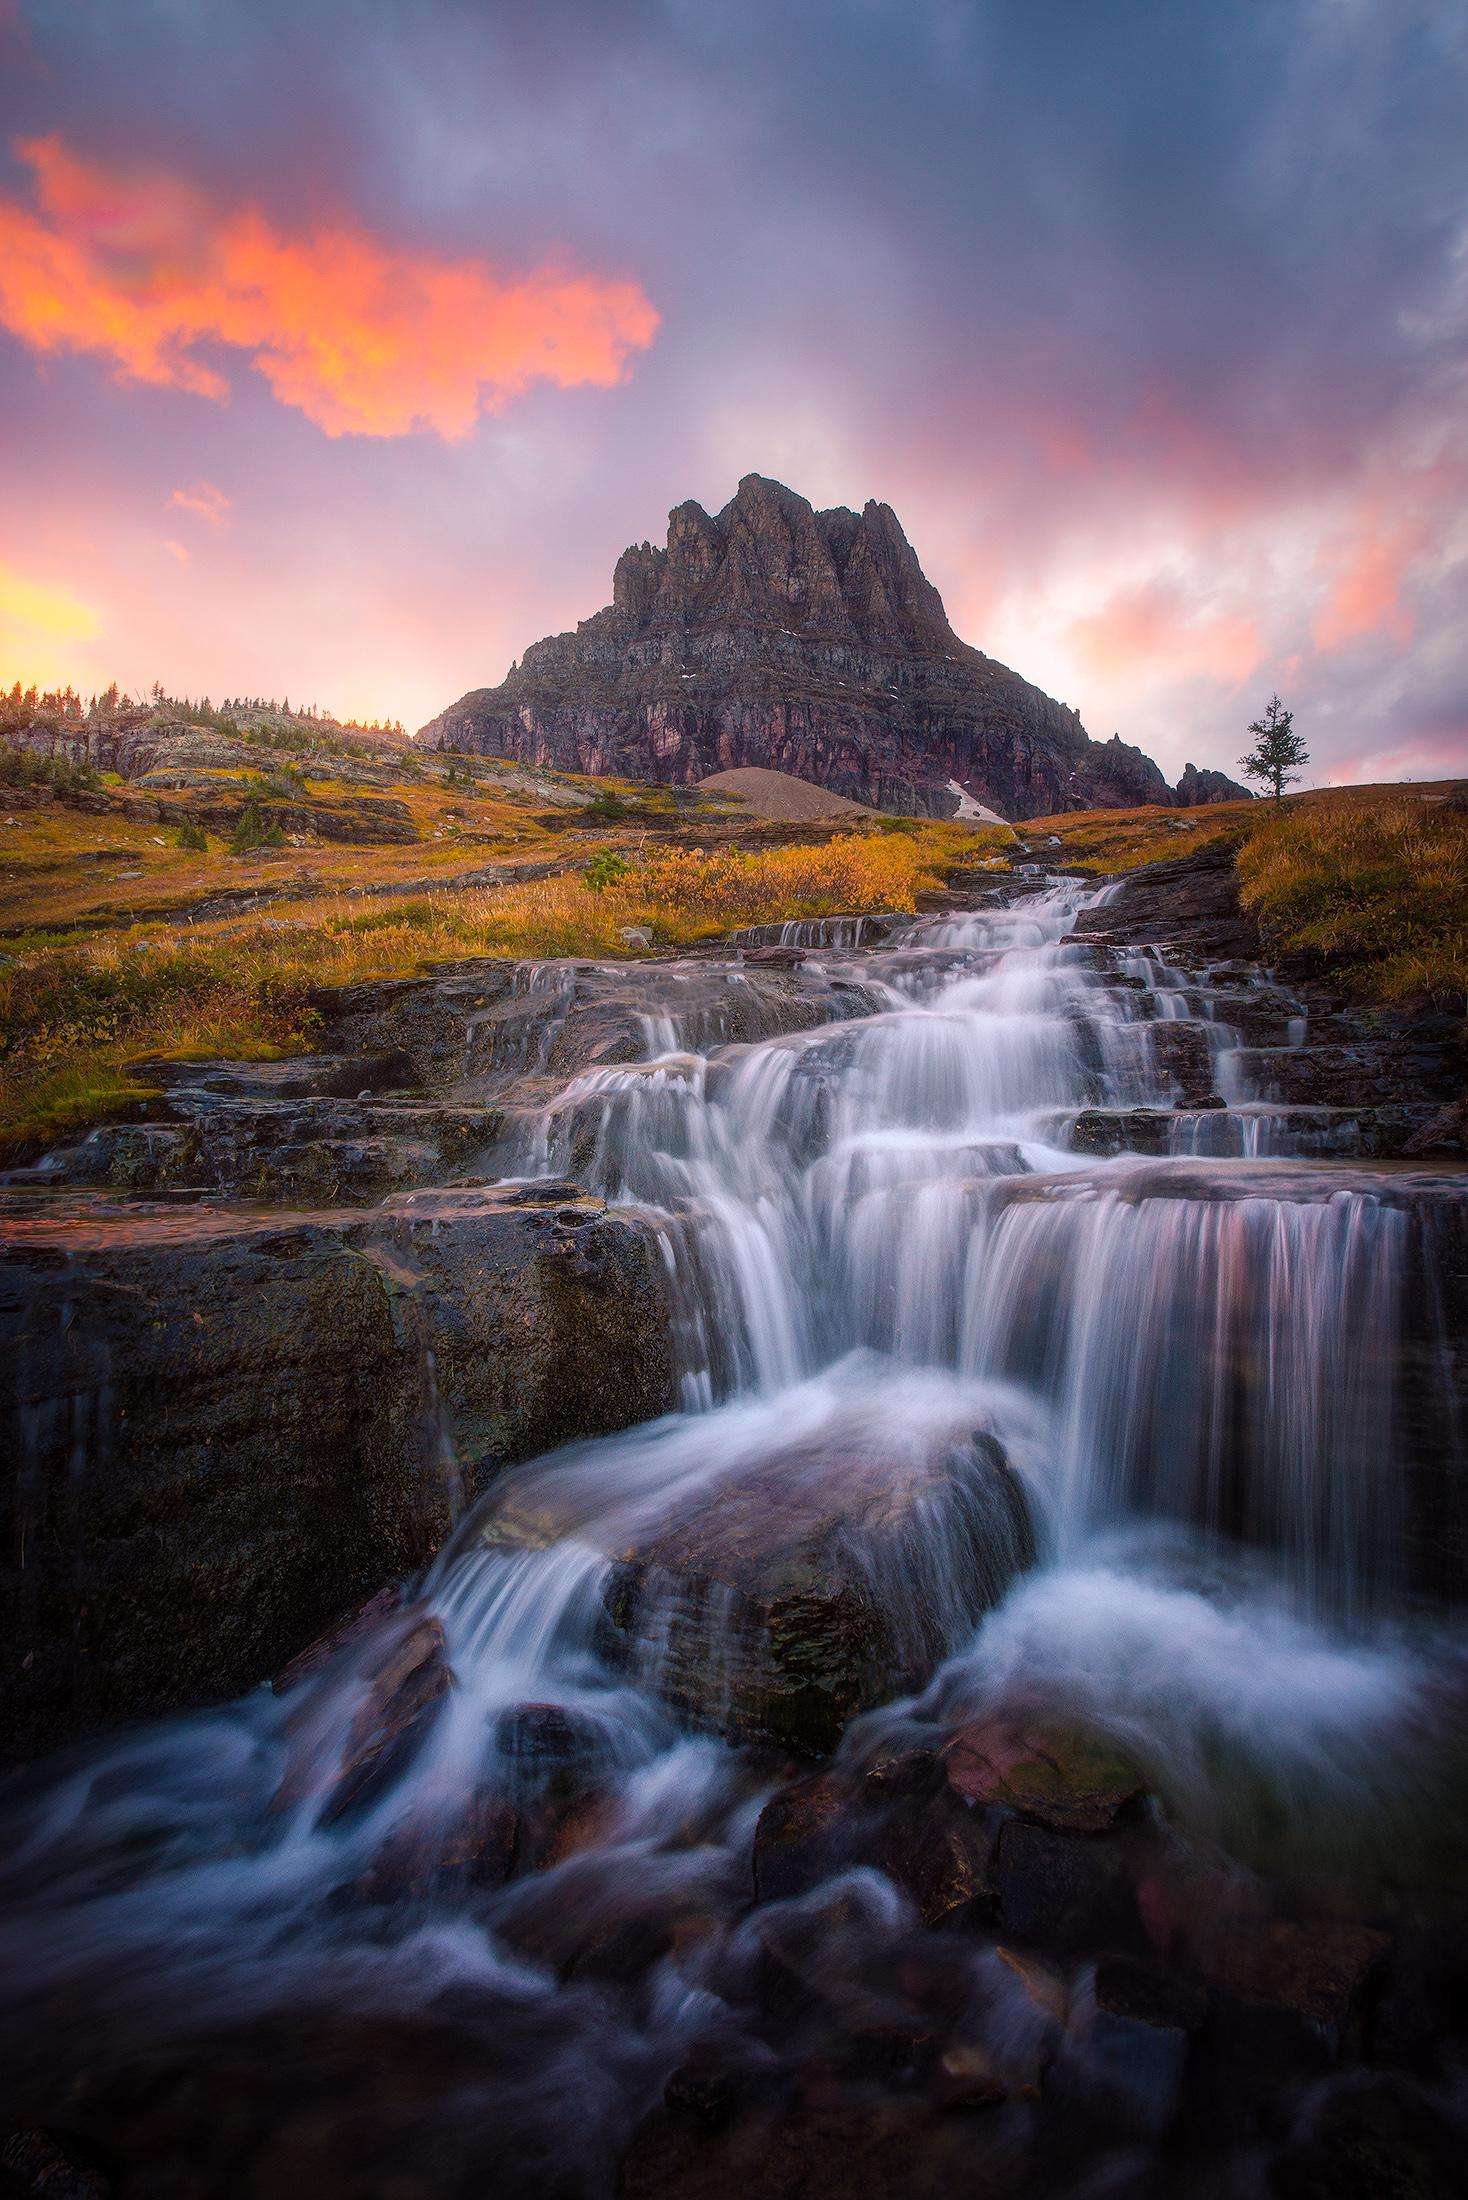 Clements Mountain in Glacier National Park, Montana USA